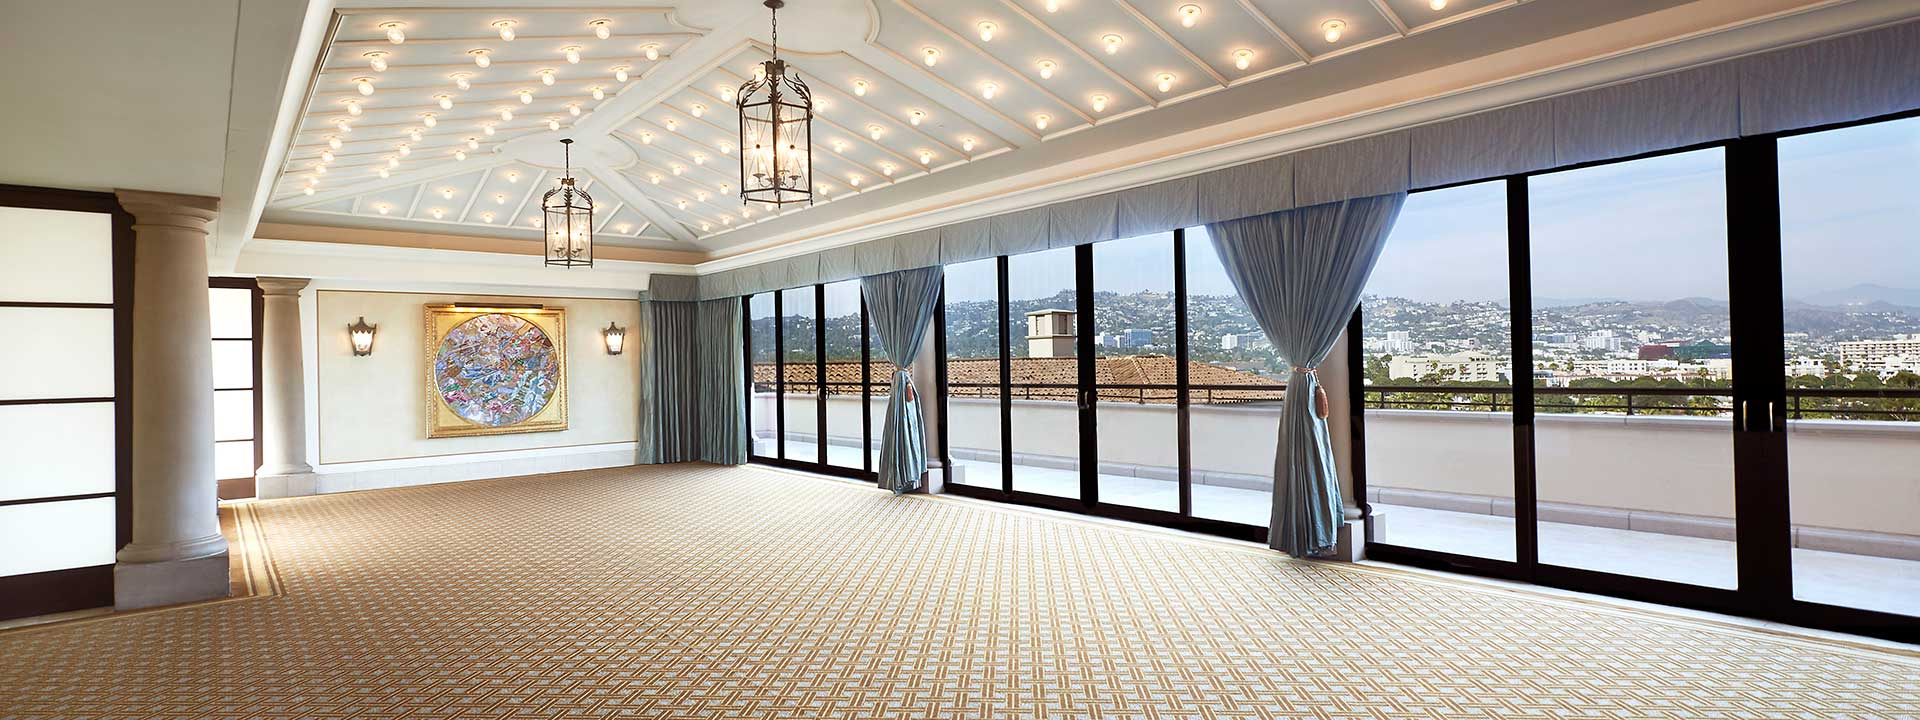 The Conservatory event space and view of the city through the glass panelled doors